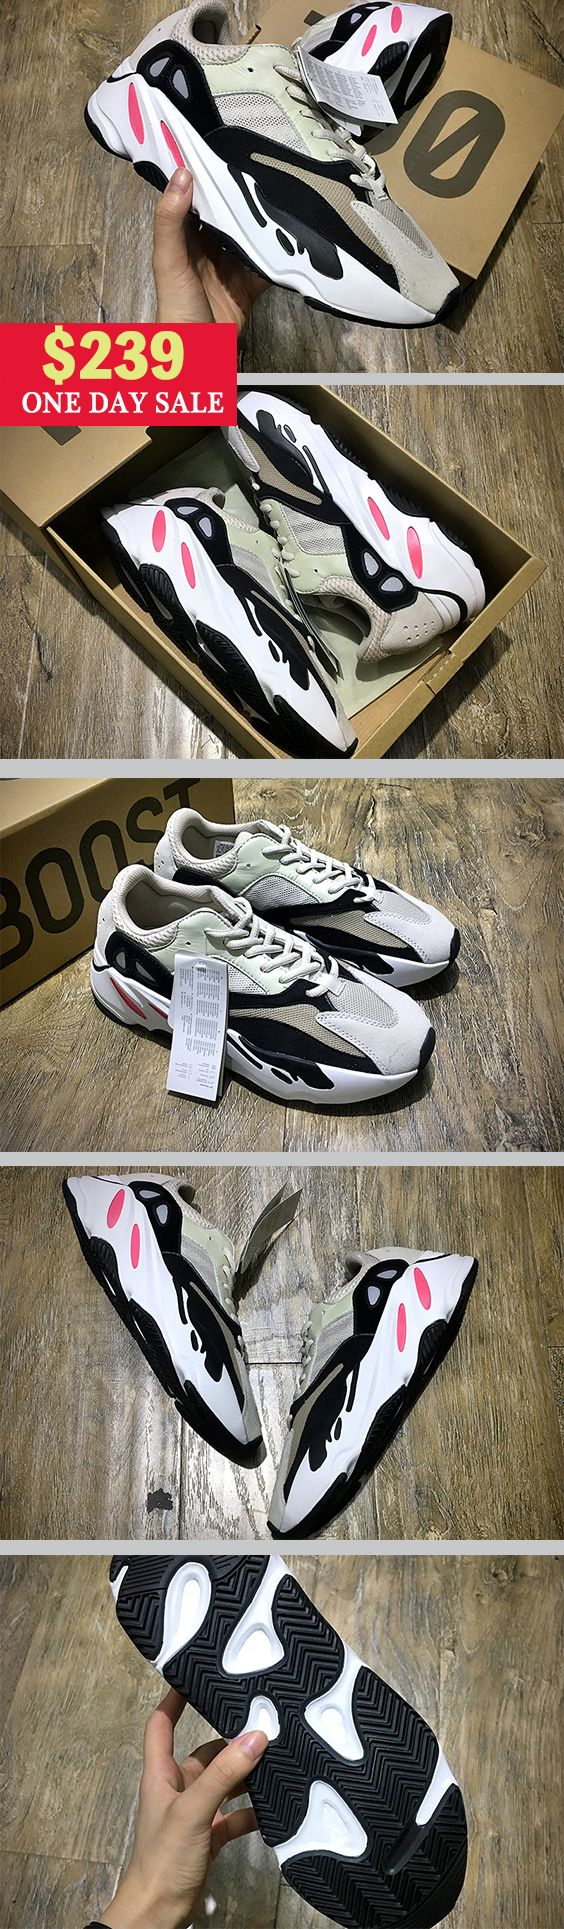 97 NEW, COMES WITH ORIGINAL BOX AND RECEIPT. See insole, tag, box, receipt and more detail pictures, Visit our online shop: greentreeclub.us   ////// kanye west Adidas yeezy boost 350 V2 zebra white beluga red black and white oxford tan release 750 700 950 high top Adidas yeezy boost 350 V2  //////  adidas pw human race pharrell williams black white yellow black fashion sneaker shoes Adidas